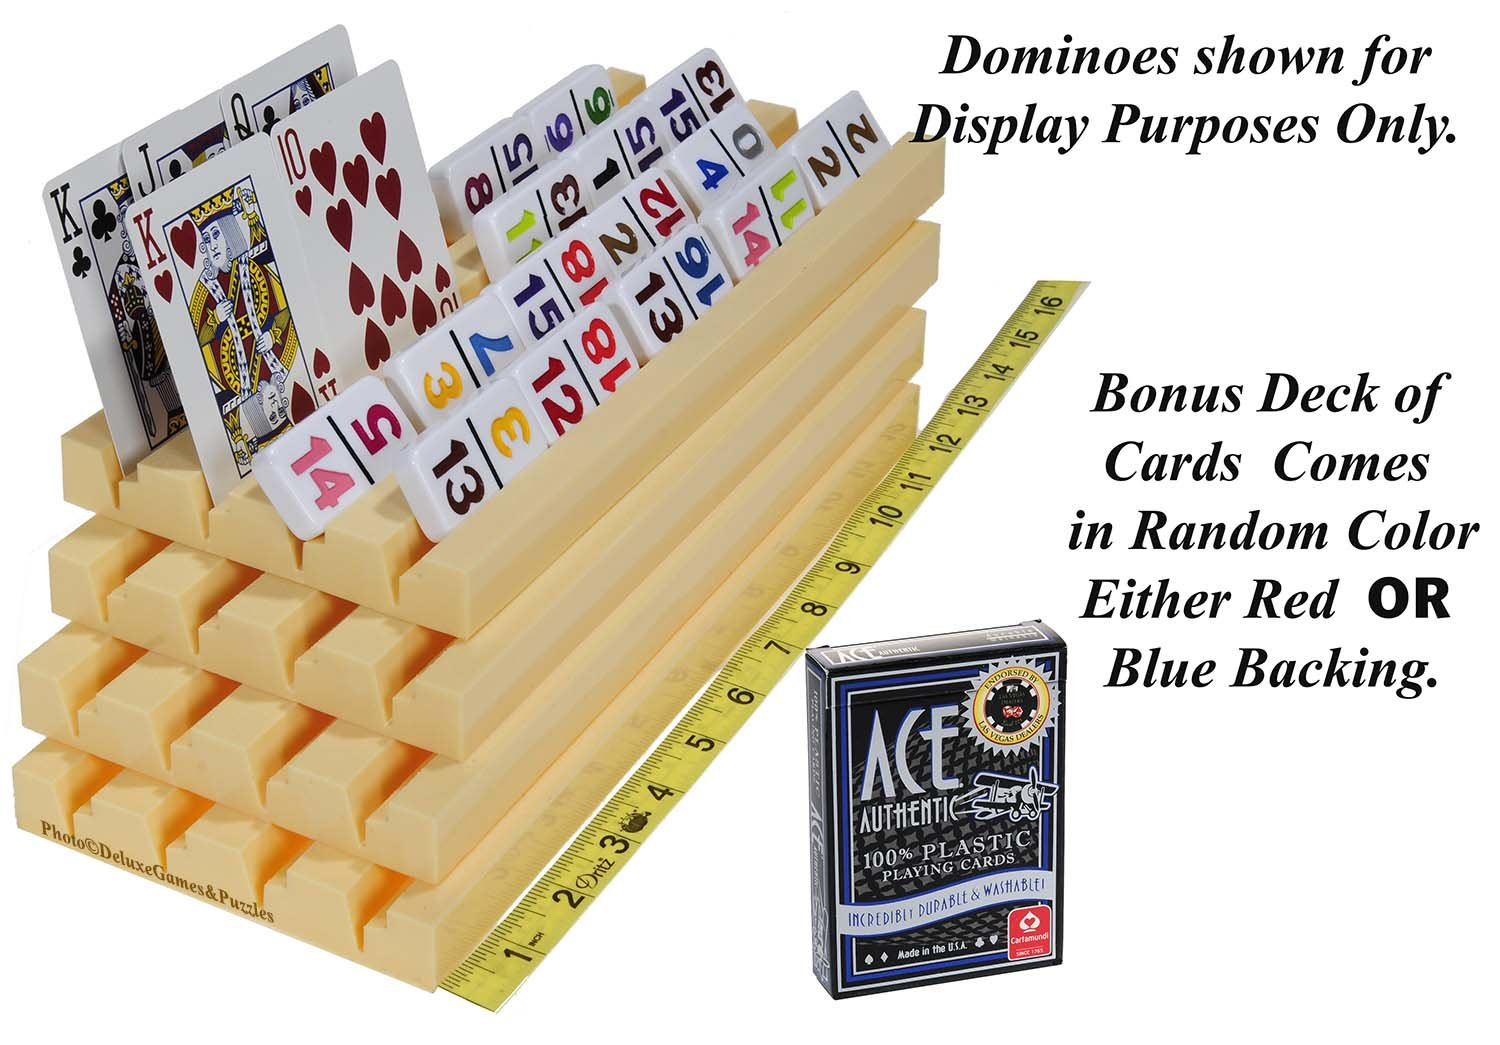 Deluxe Games and Puzzles Racks for Dominoes OR Playing Card /_ Dual Use /_ Set of 4 /_ Bonus 1 Deck of Ace 100/% High Quality Plastic Playing Cards Plastic Trays Random backing color of Red or Blue